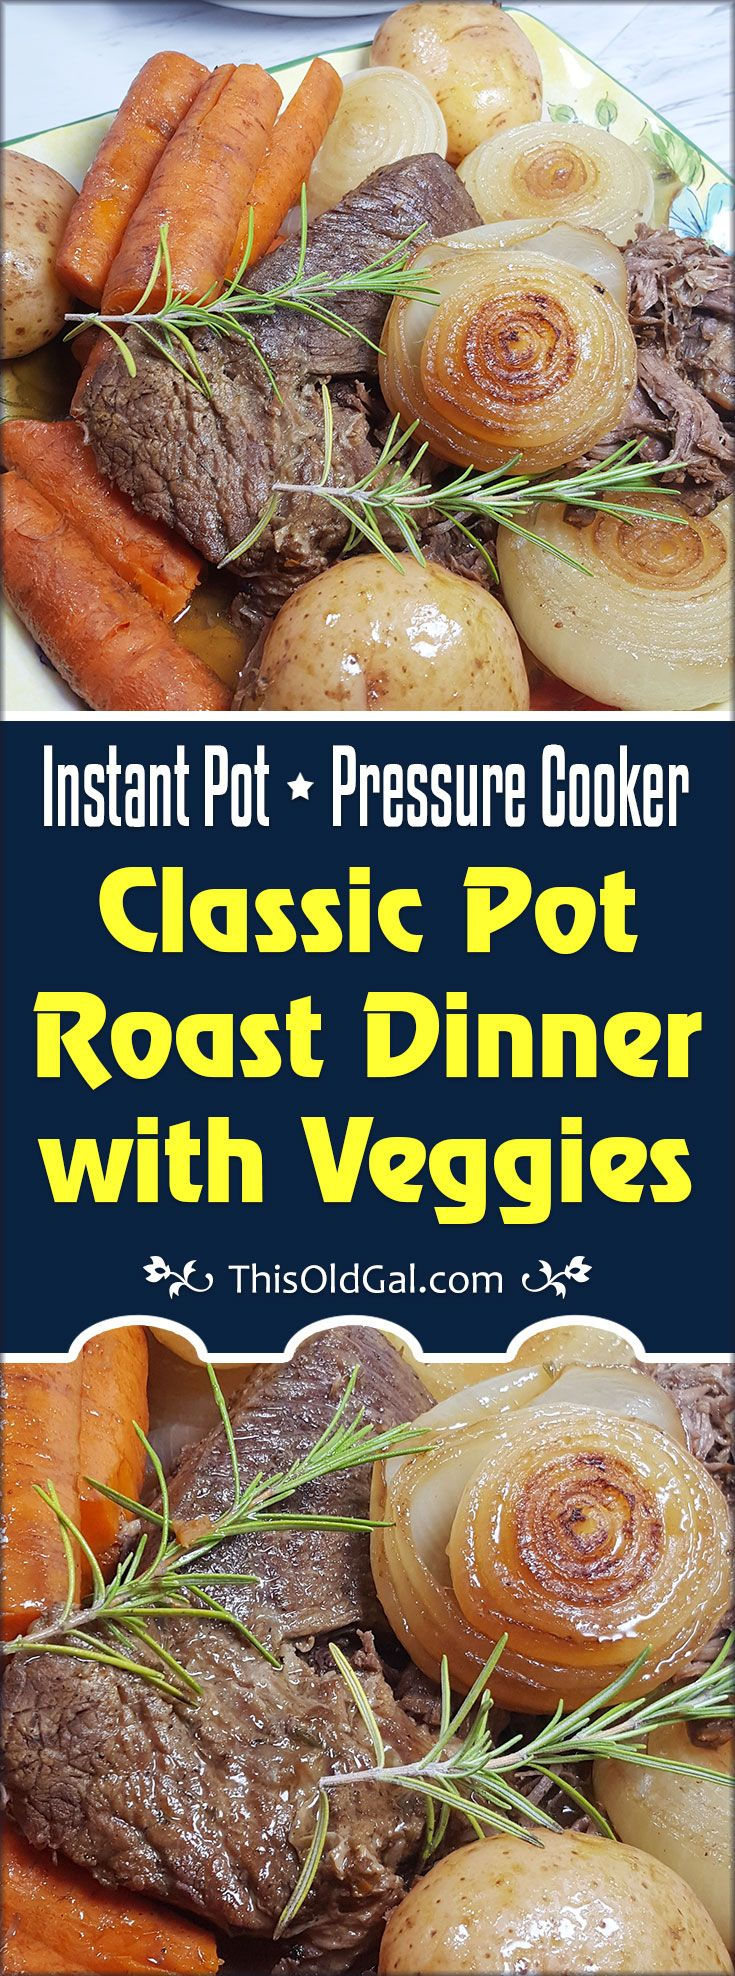 Pressure Cooker Classic Pot Roast Dinner Is The Epitome Of A Wonderful Sunday Night Family Meal